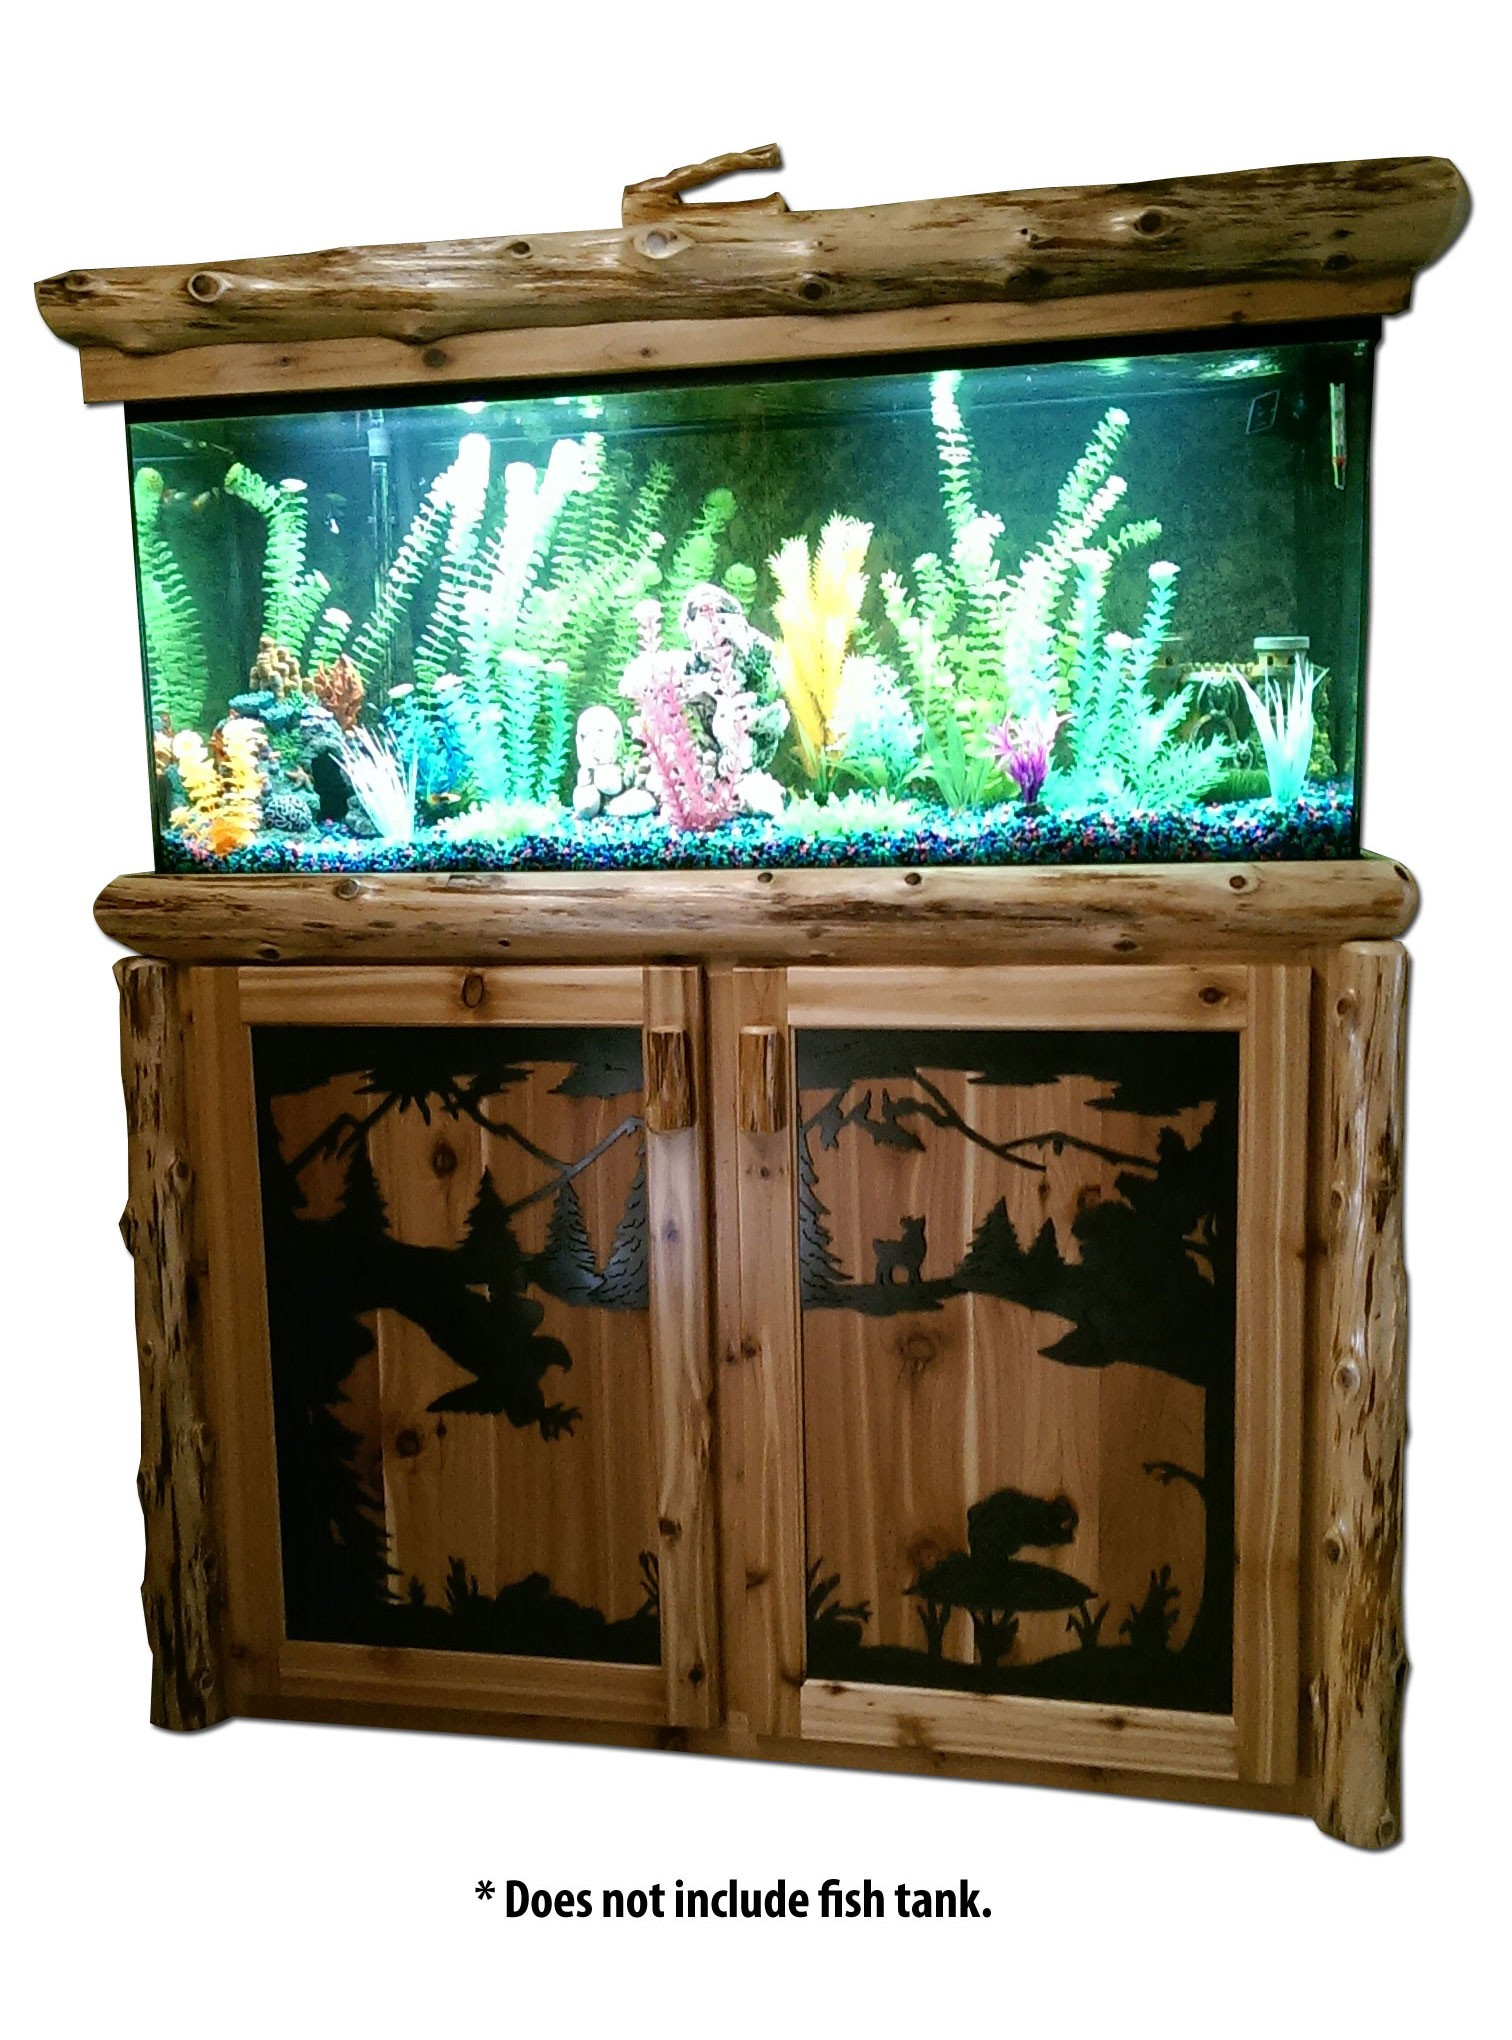 Log fish tank stand cabinet white cedar barnwood for Fish tanks with stands